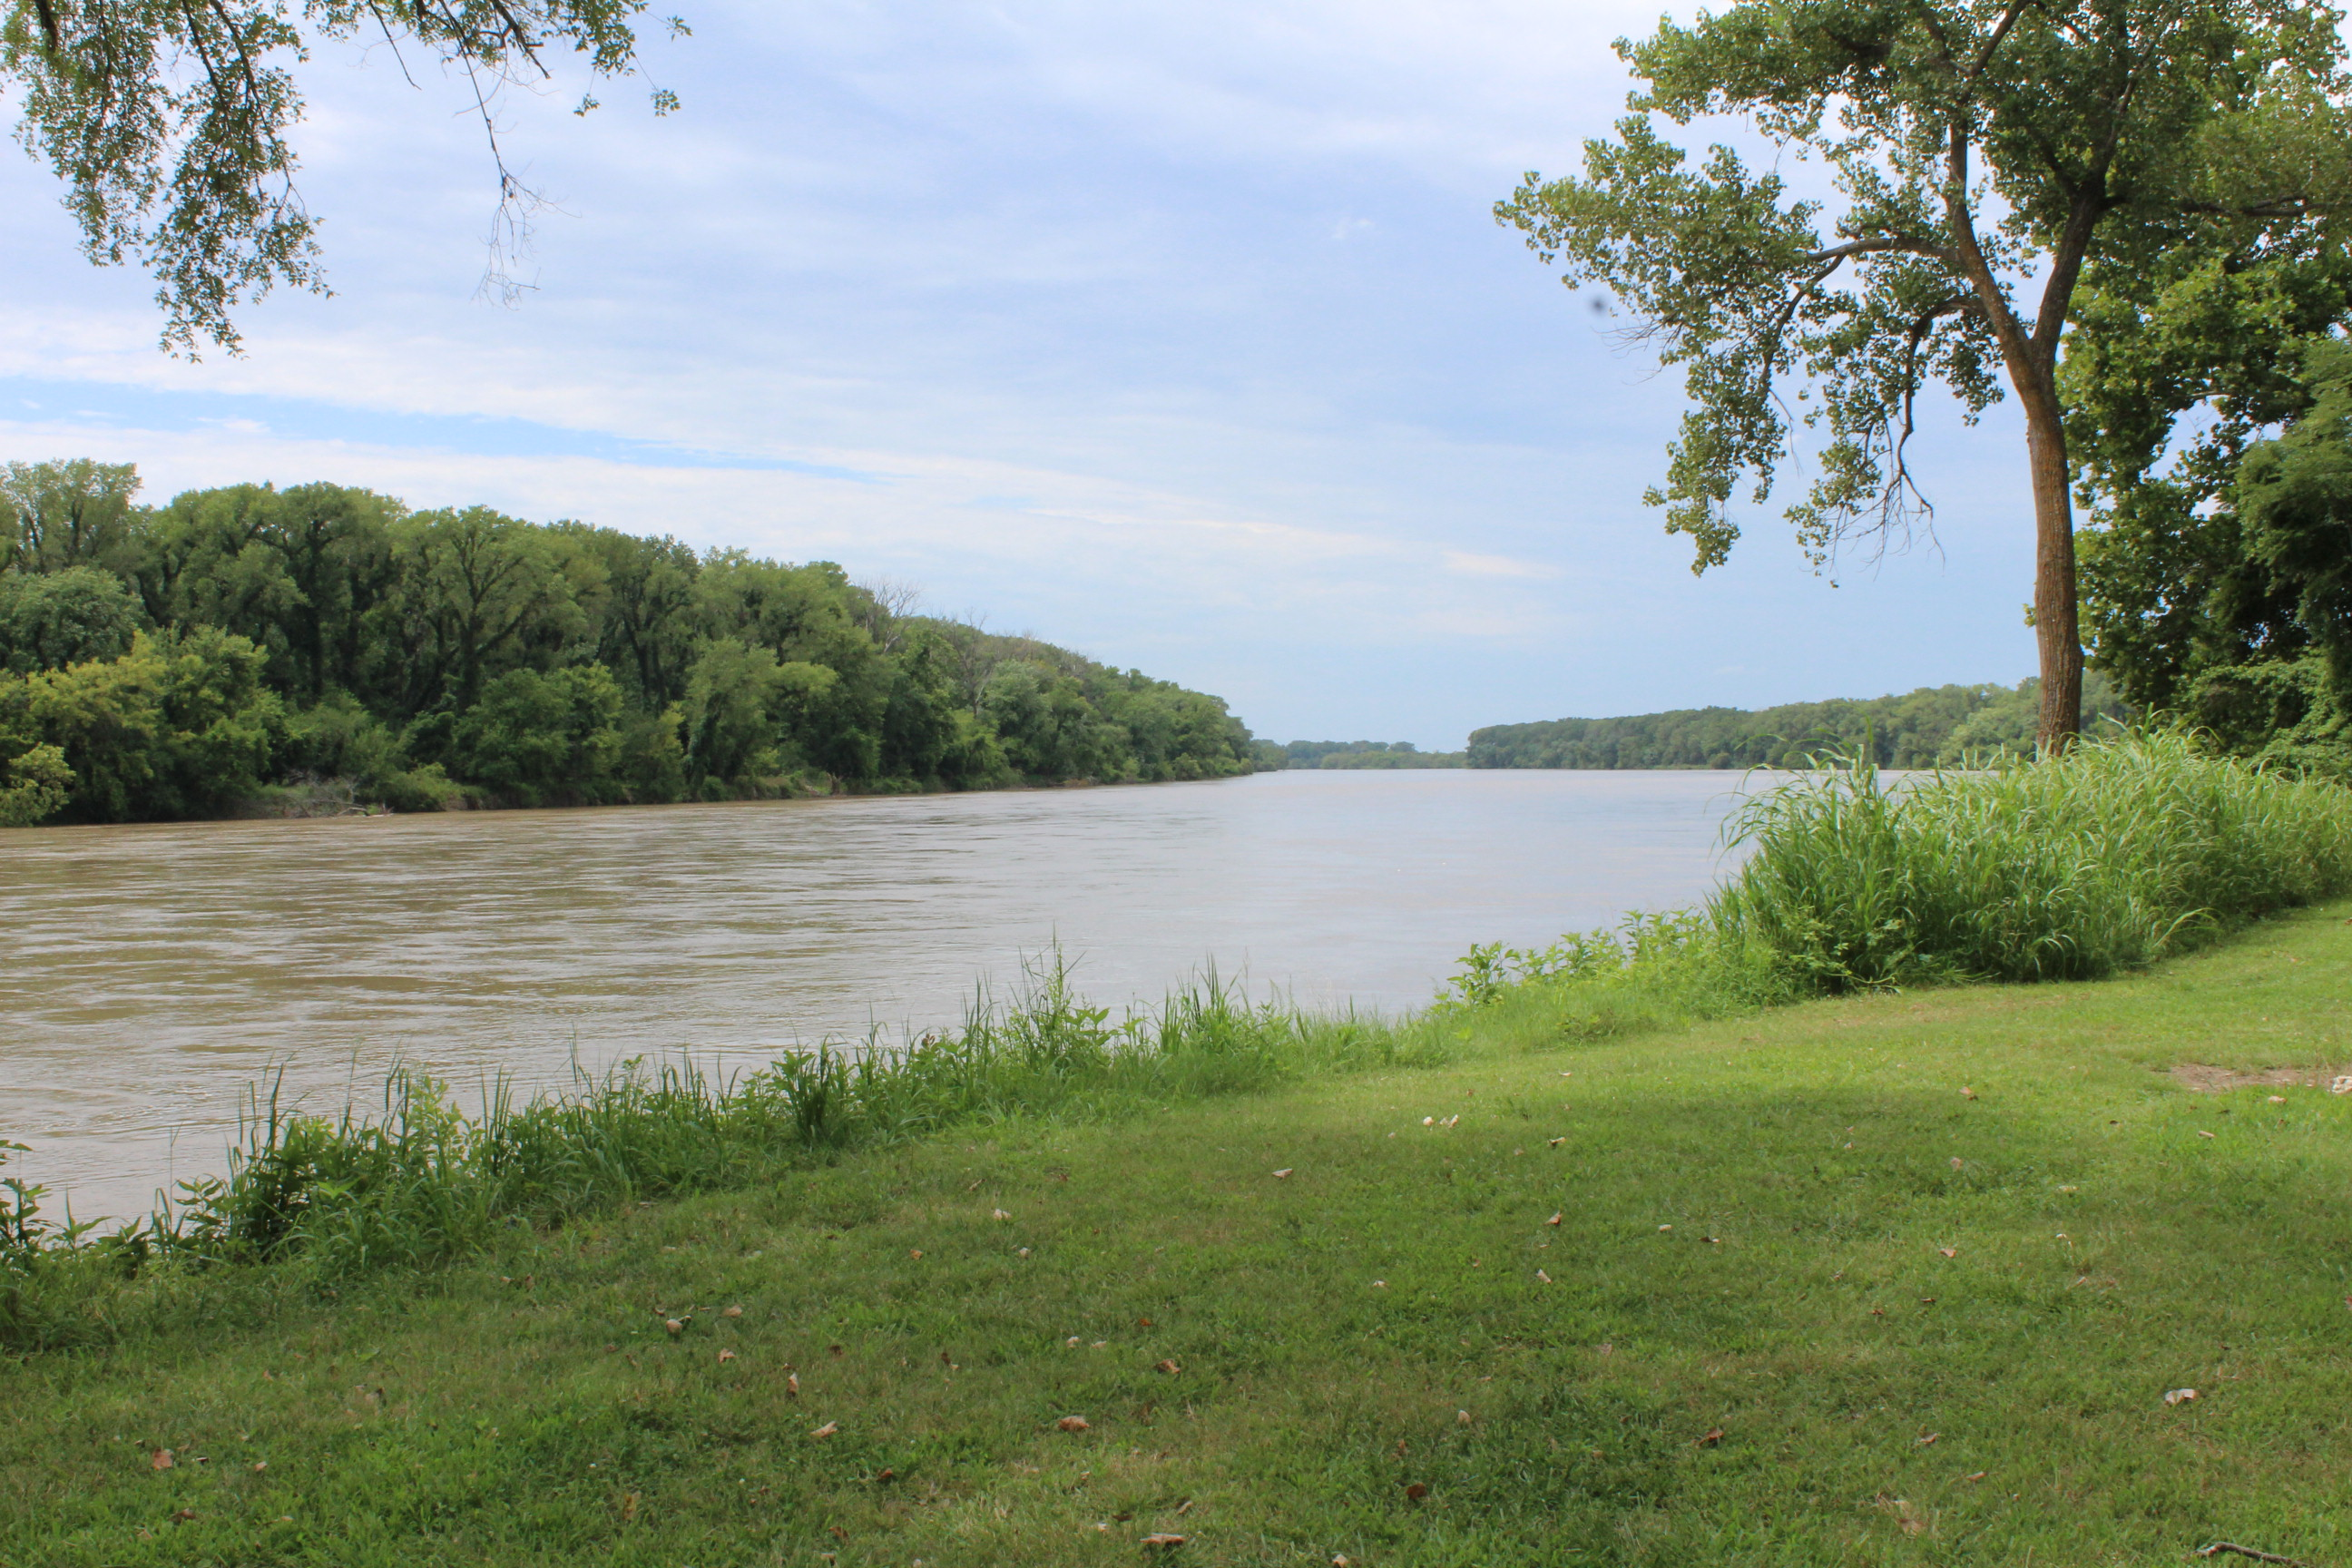 The Kansas River, as seen from Riverfront Park in North Lawrence. (Photo by J. Schafer)